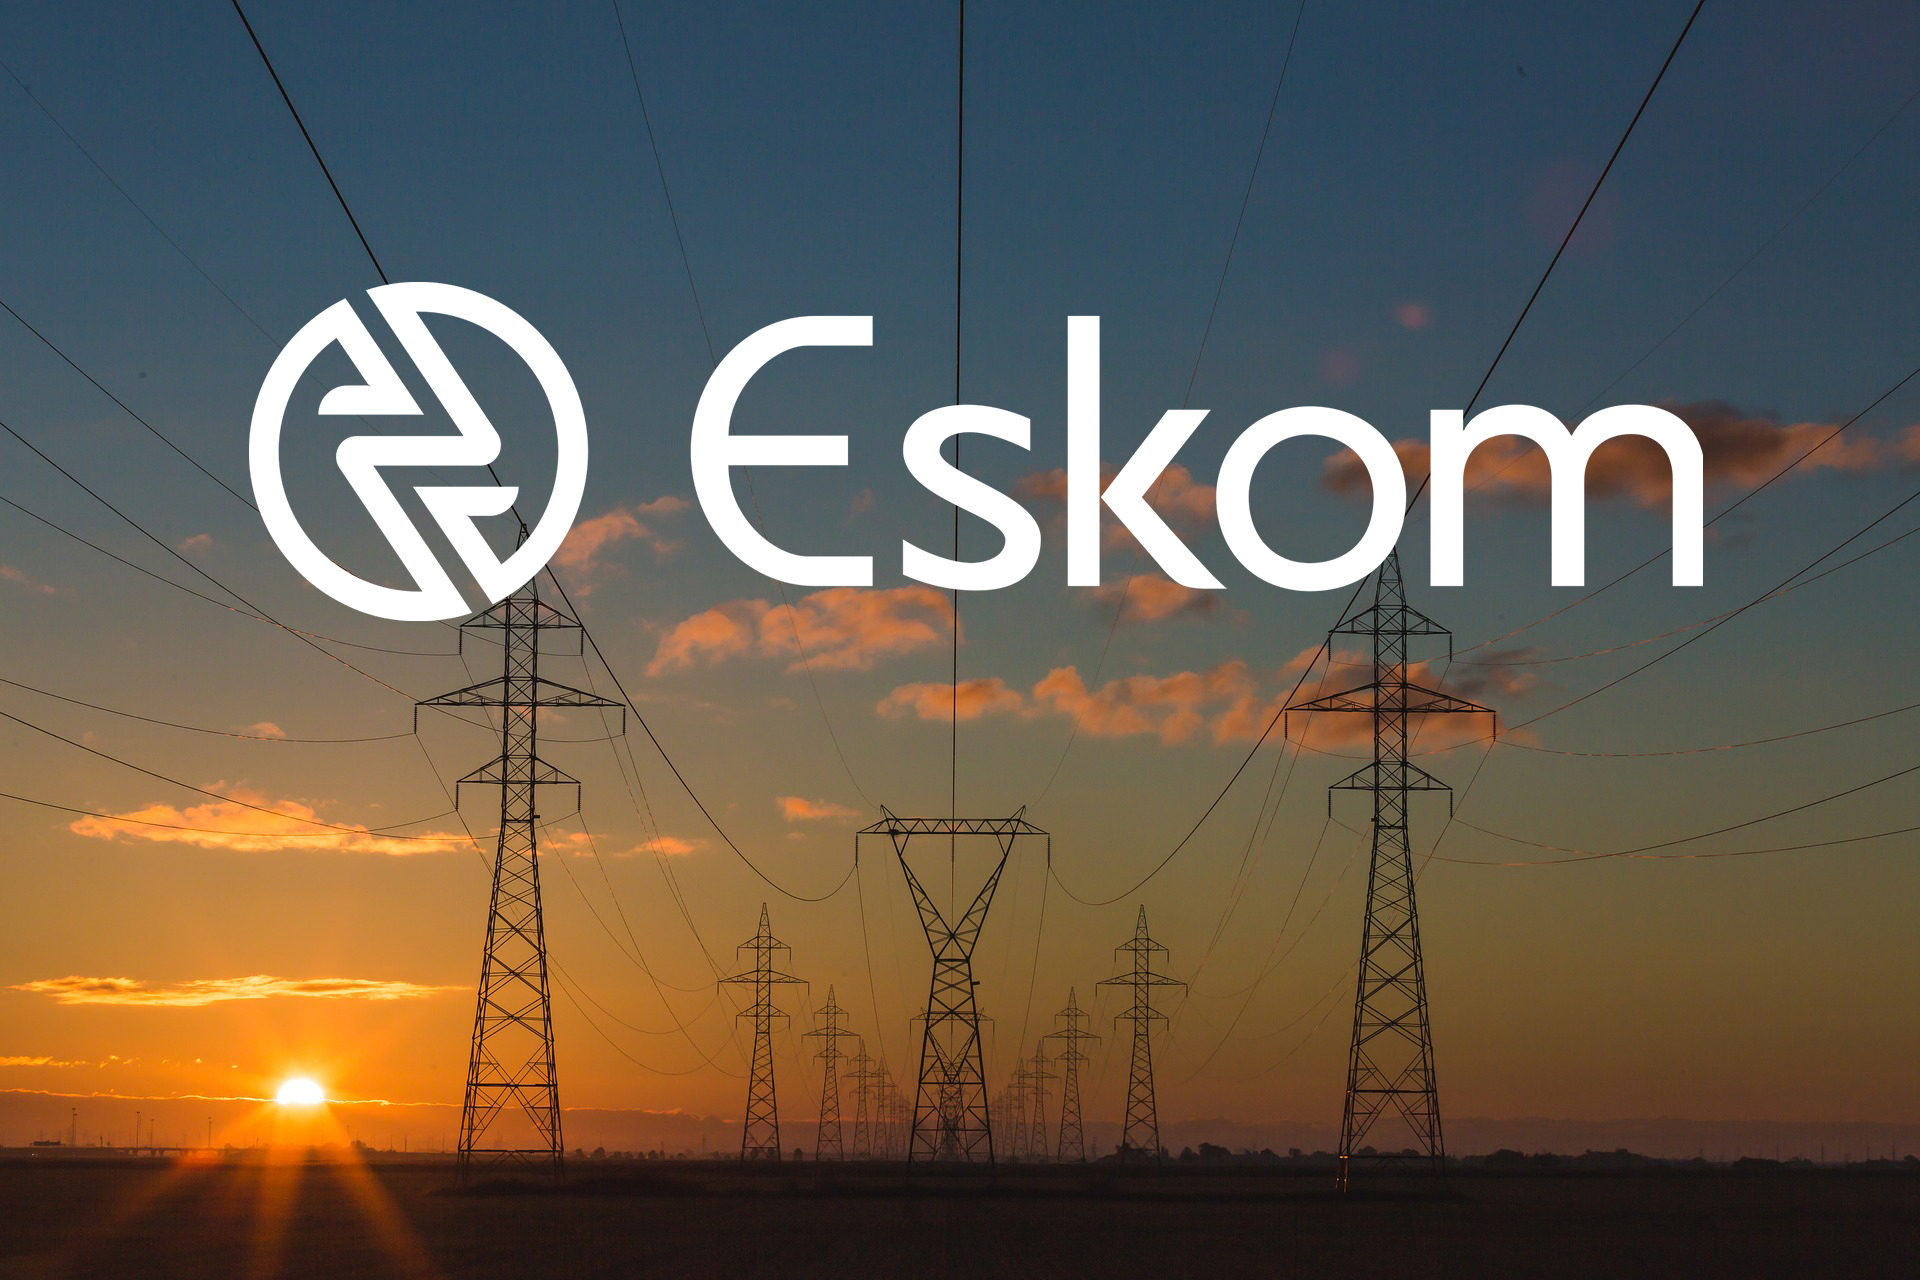 Minister Gordhan should condemn Eskom's plans to retrench skilled white employees